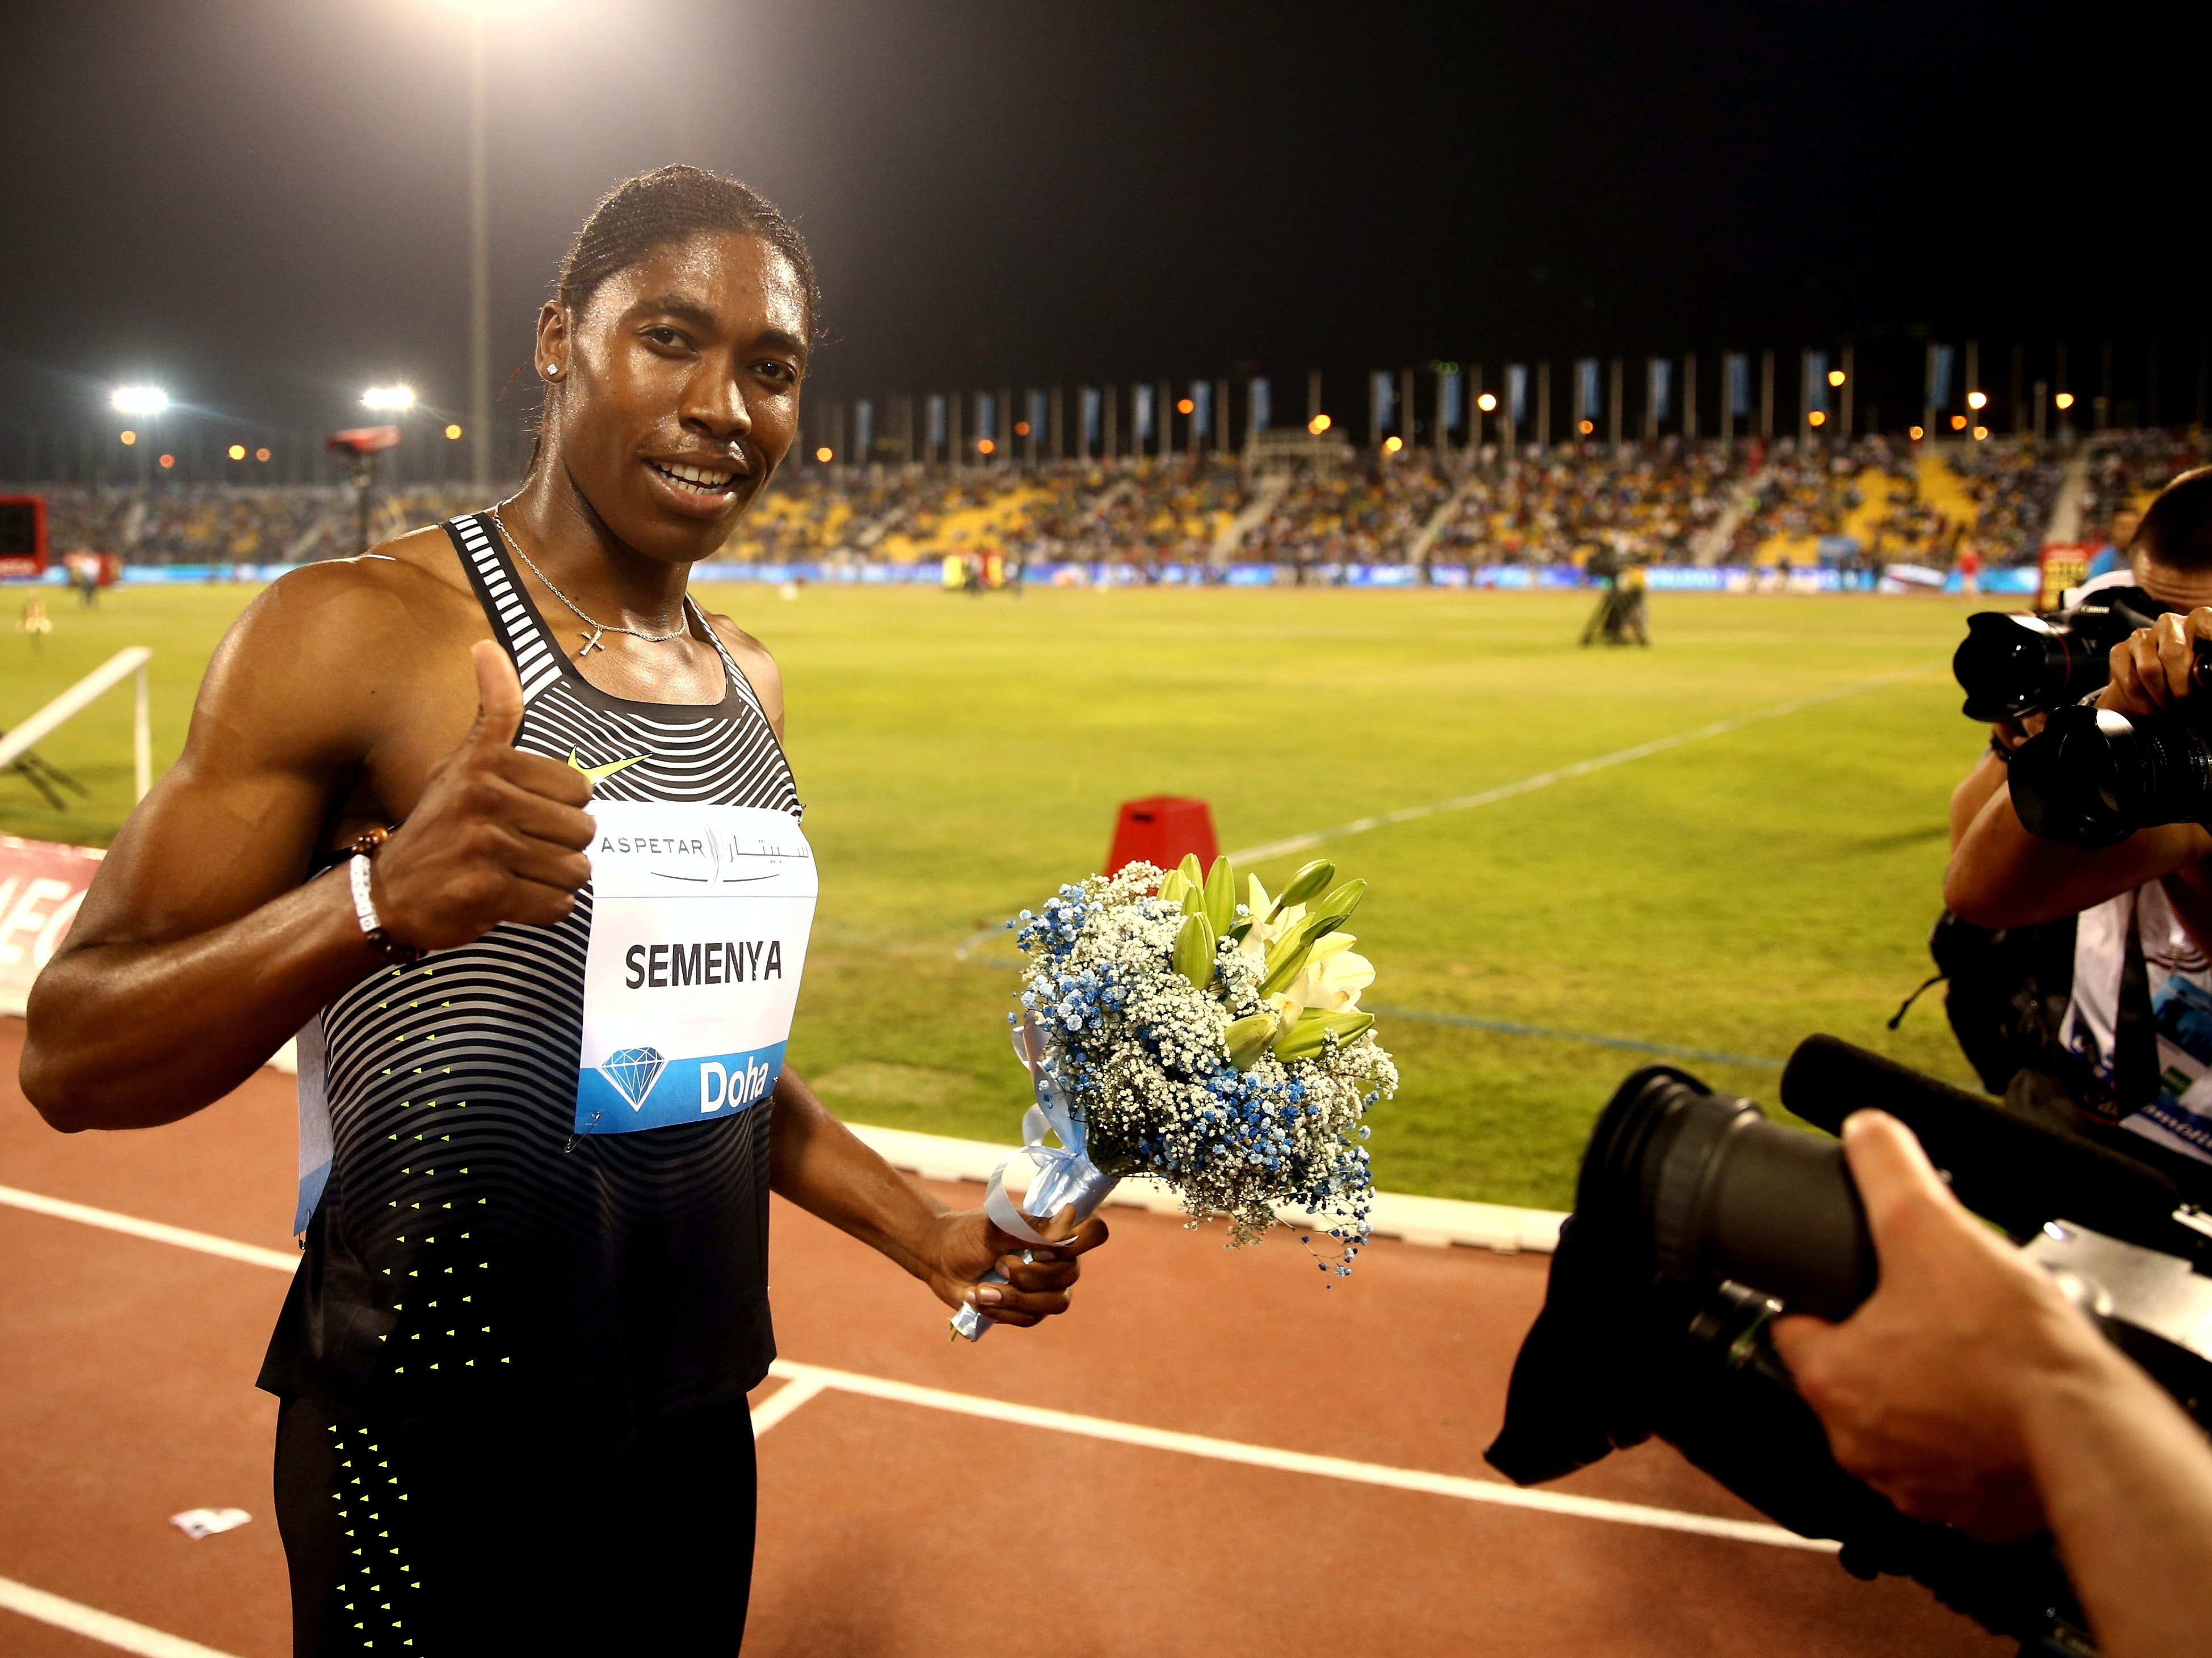 Caster Semenya of South Africa celebrates after victory in the Women's 800 meters final during the Doha IAAF Diamond League 2016 meeting at Qatar Sports Club.